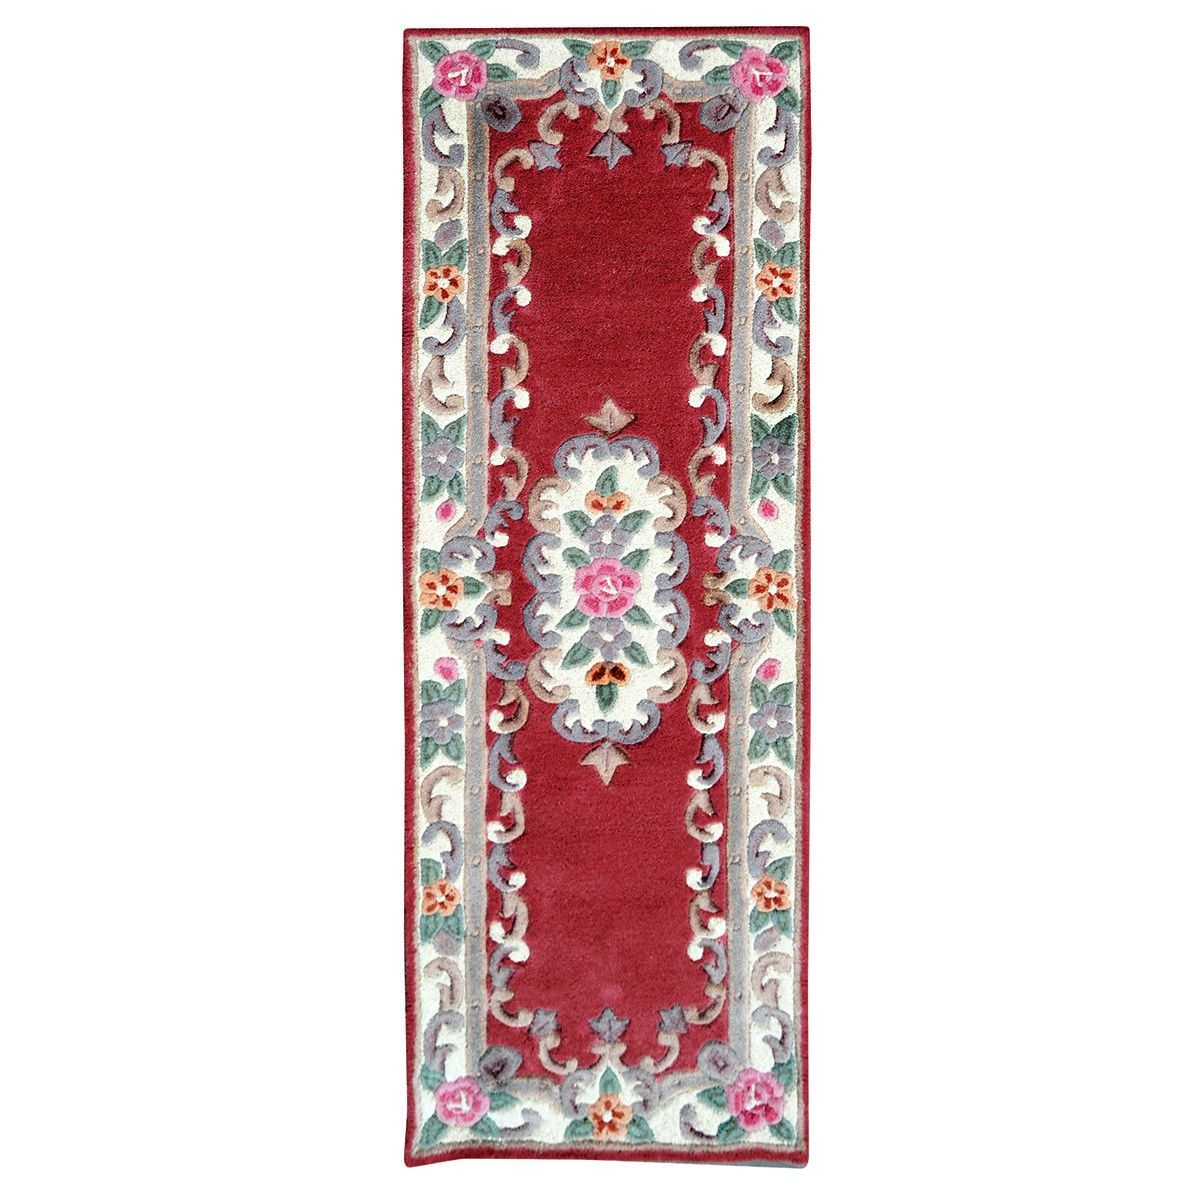 Avalon French Aubusson Wool Runner Rug, 210x67cm, Red